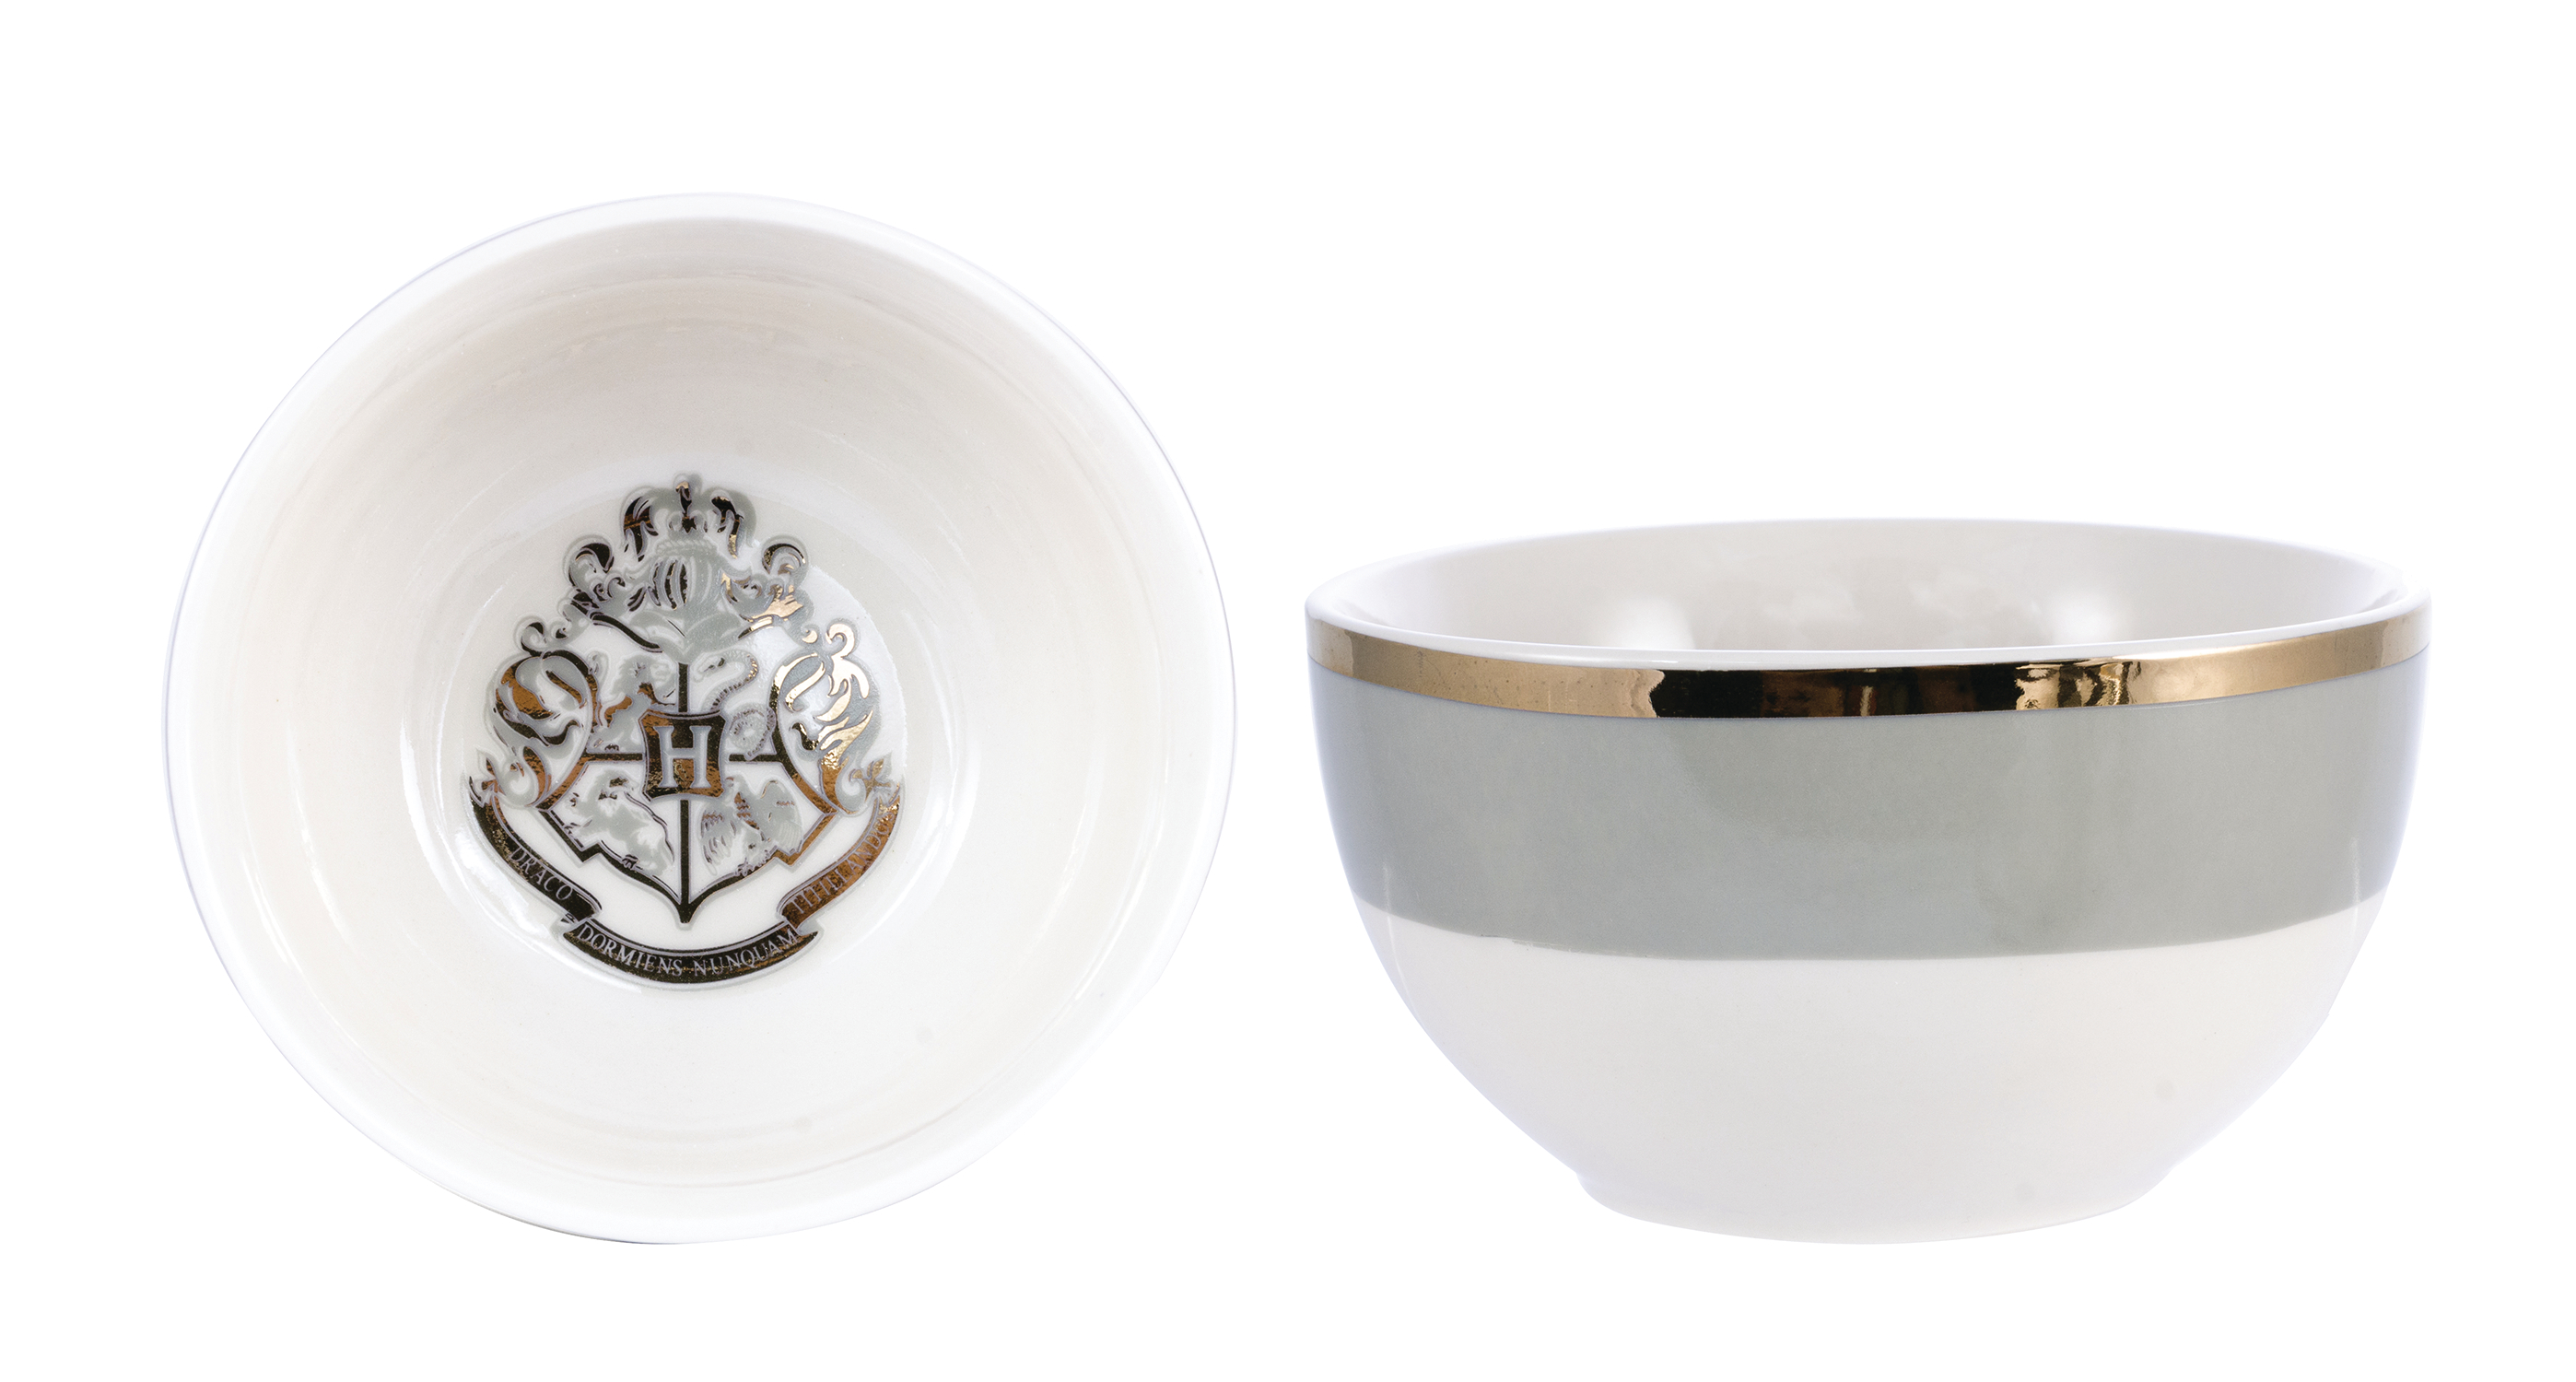 HP HOGWARTS GREY & GOLD 4PC CERAMIC BOWL SET (DEC189142)